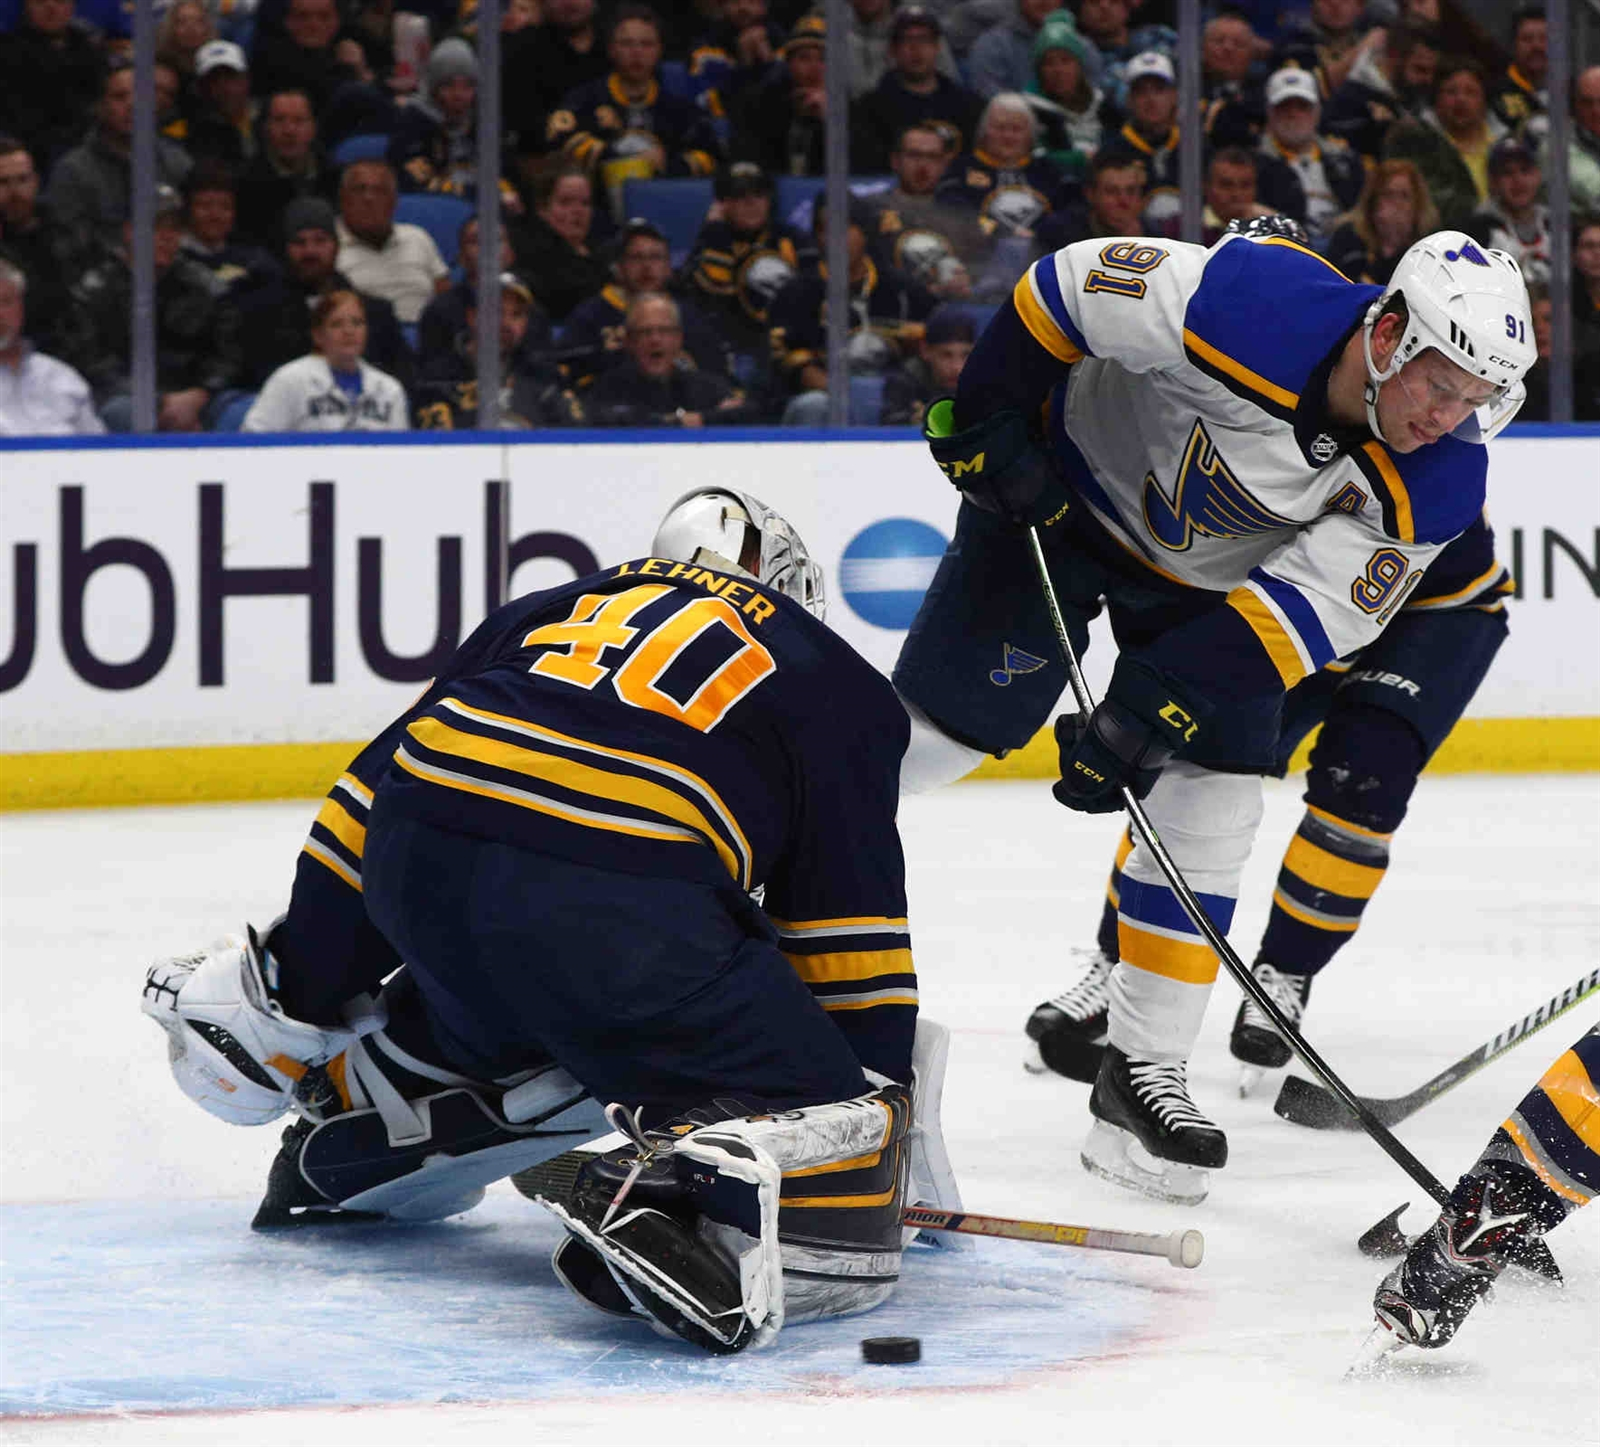 Buffalo Sabres goaltender Robin Lehner (40) makes a great save on a shot by St. Louis Blues right wing Vladimir Tarasenko (91) in the second period.